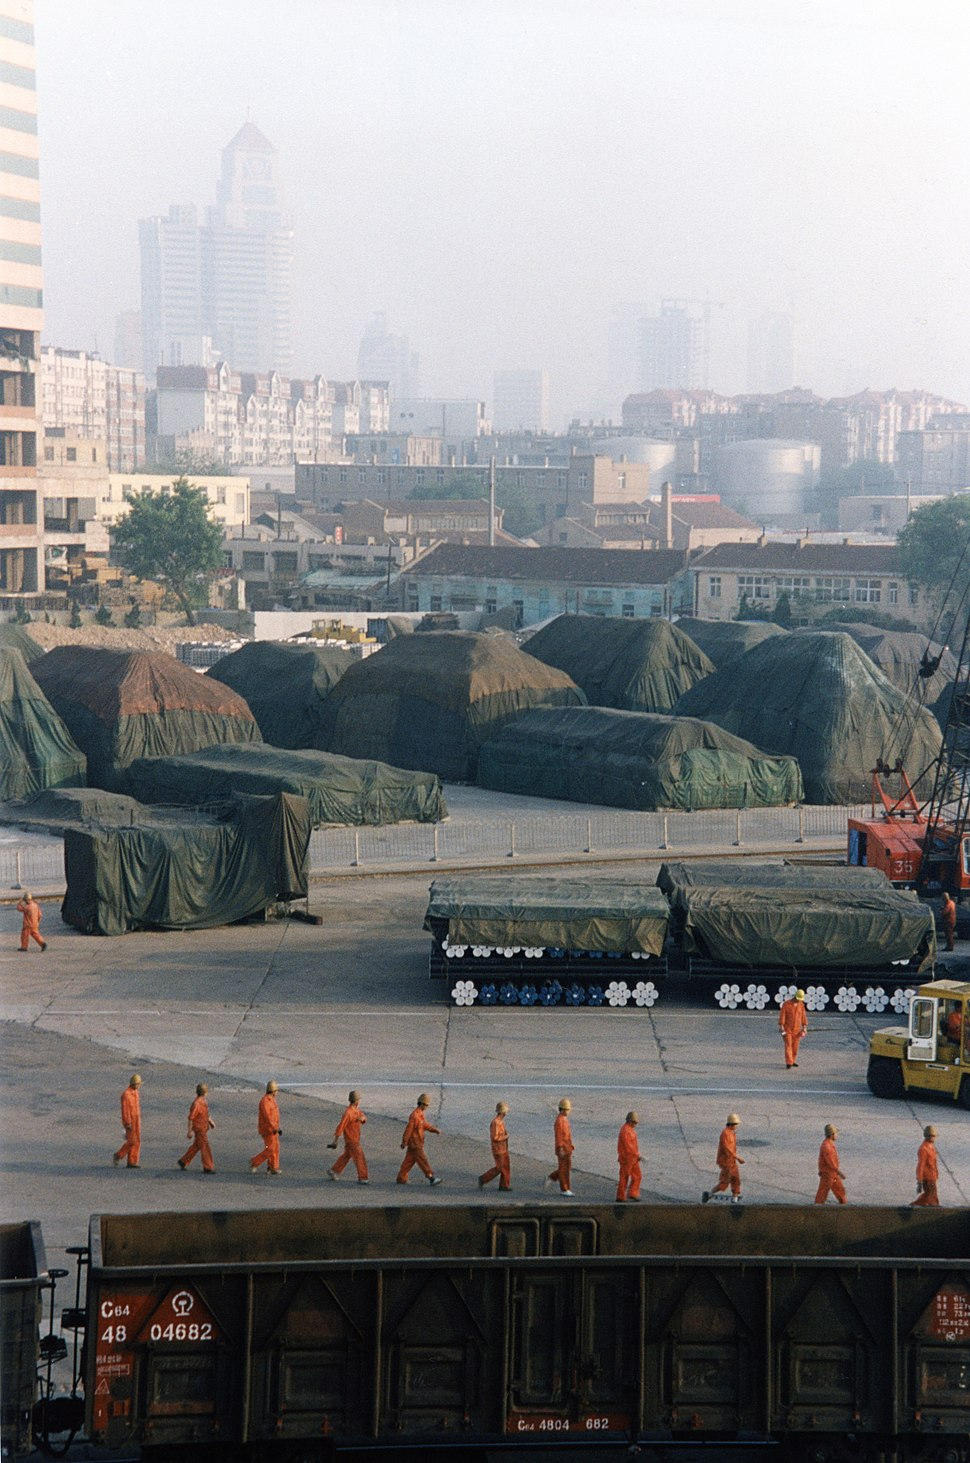 Workers at Dalian port 2002